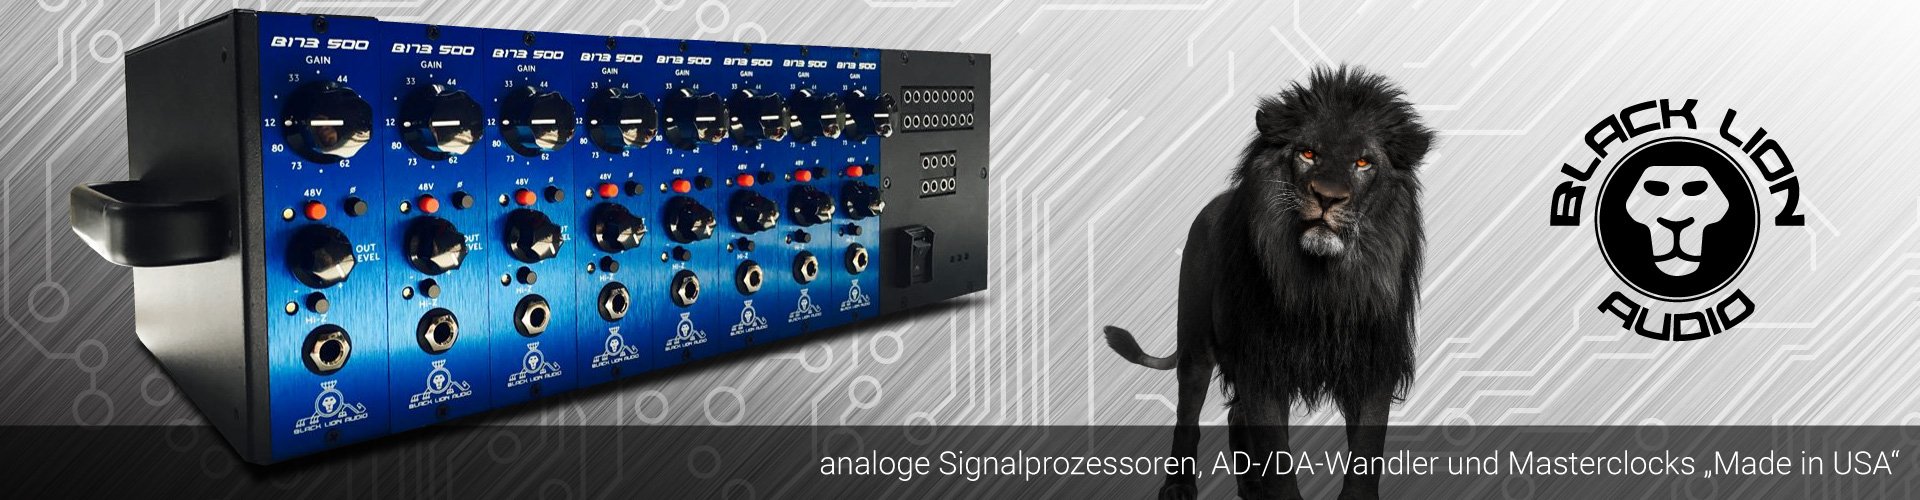 "Black Lion Audio - analoge Signalprozessoren, AD-/DA-Wandler und Masterclocks ""Made in USA"""